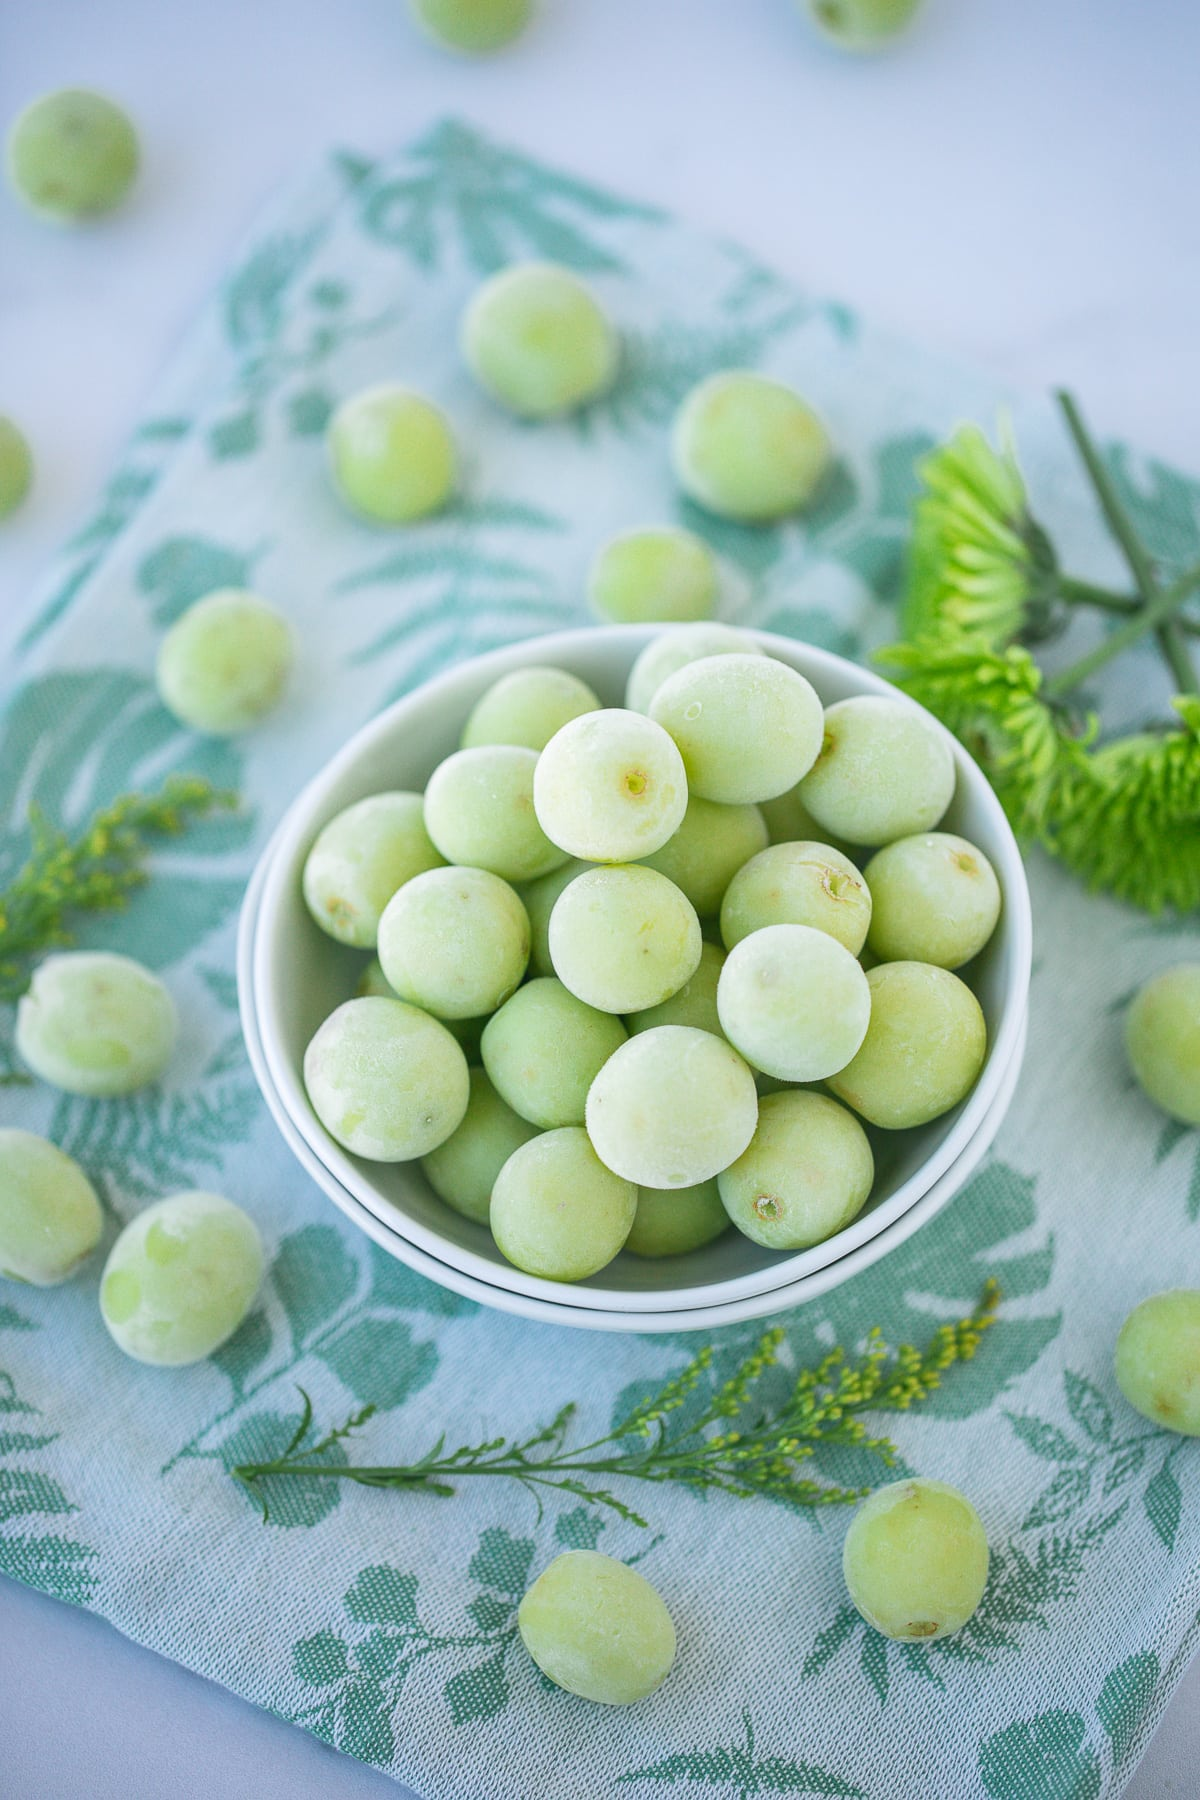 bowl of green frozen grapes on a countertop